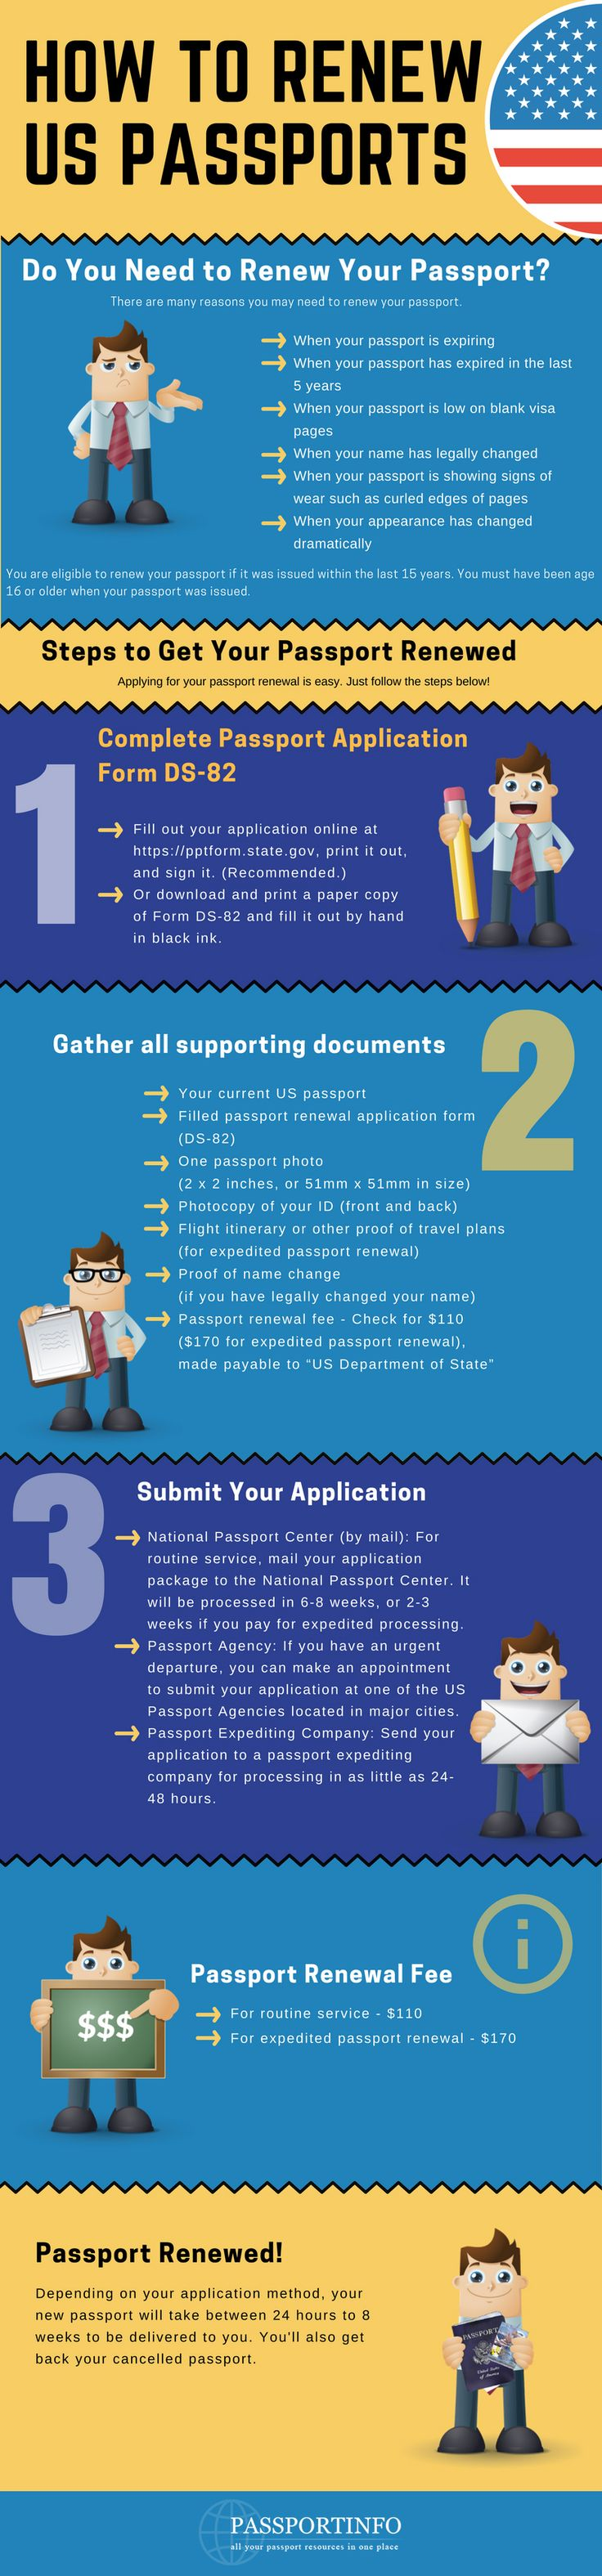 How To Renew Us Passport In 3 Simple Steps:graphic